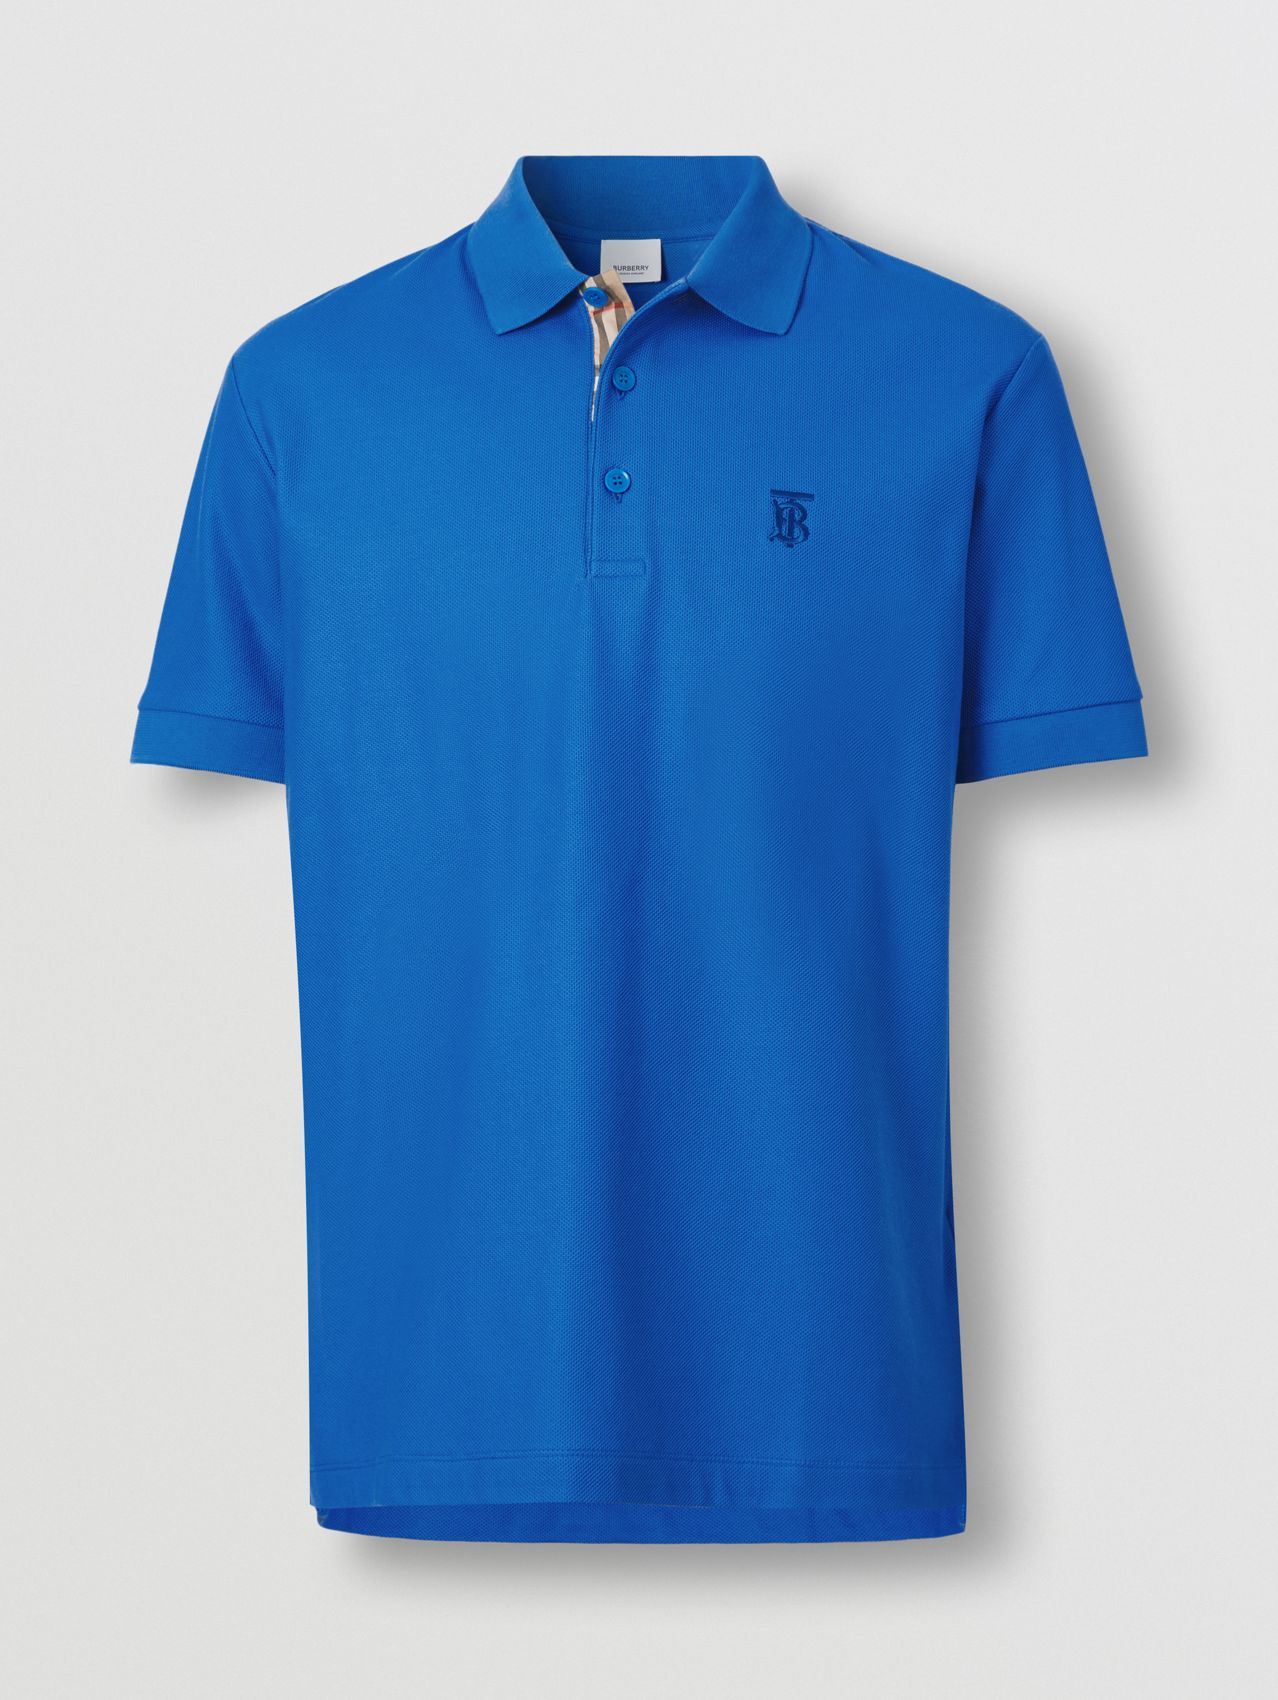 Monogram Motif Cotton Piqué Polo Shirt in Warm Royal Blue